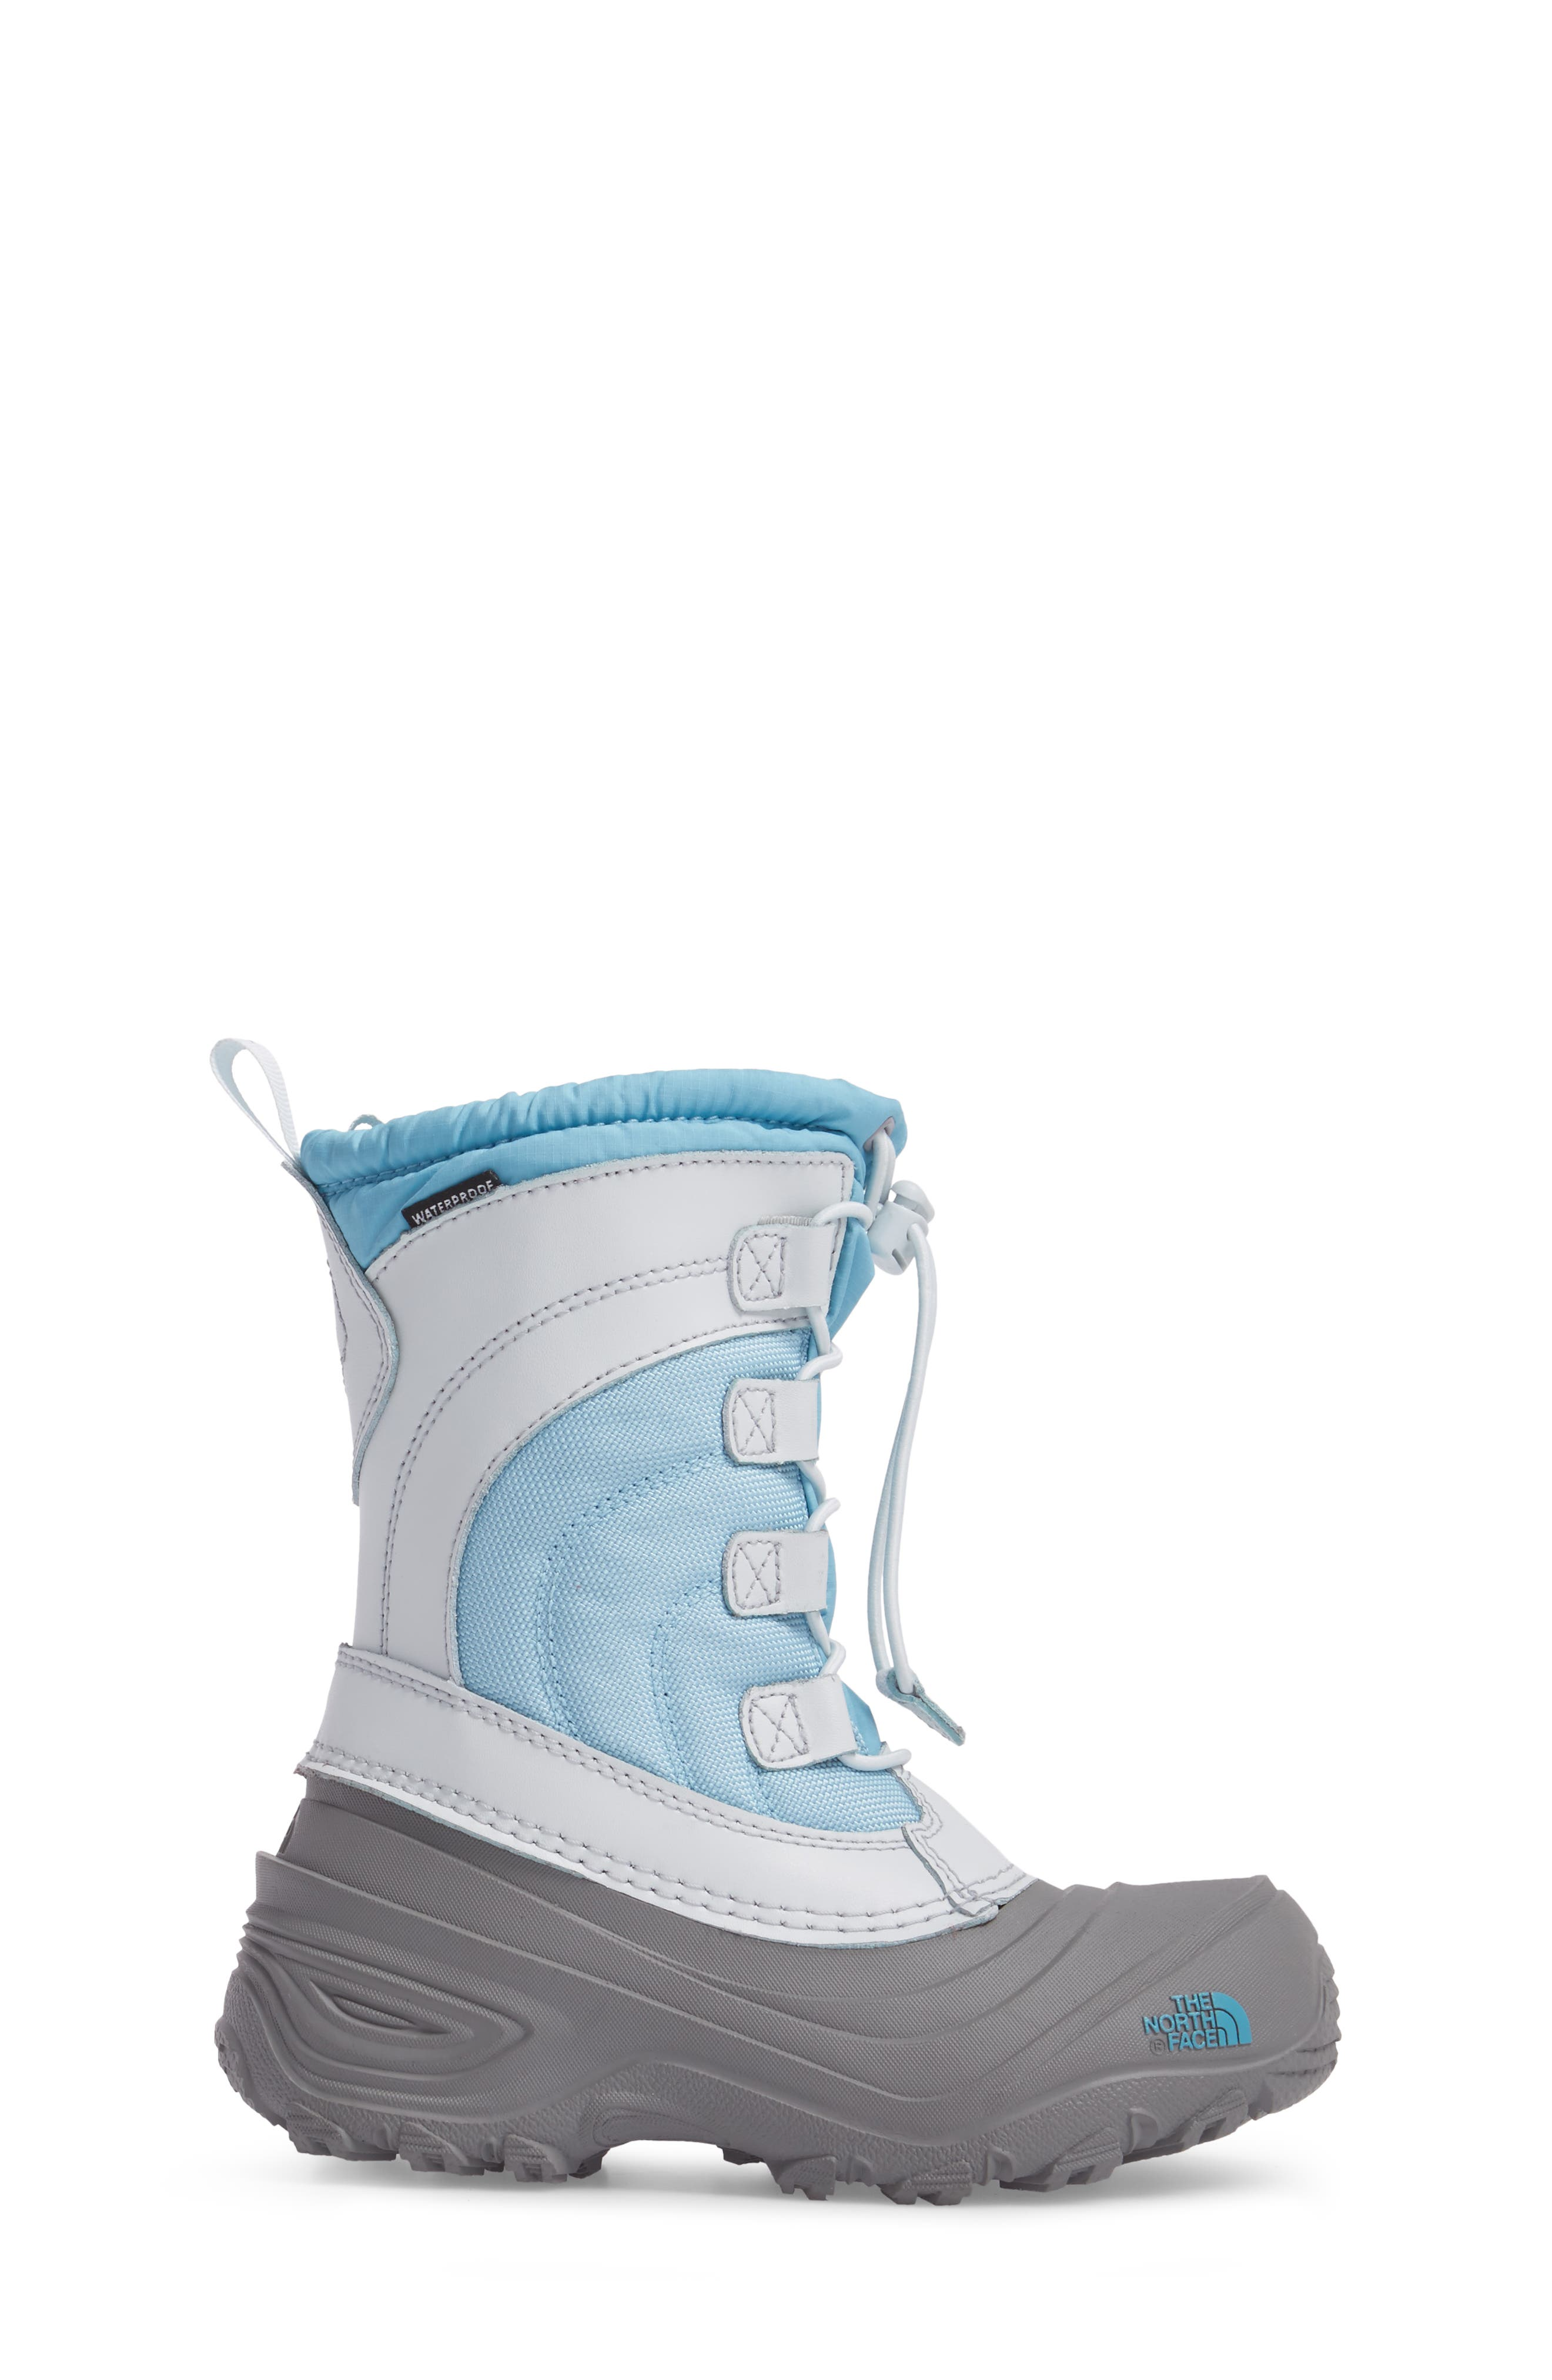 Alpenglow IV Waterproof Insulated Winter Boot,                             Alternate thumbnail 3, color,                             400